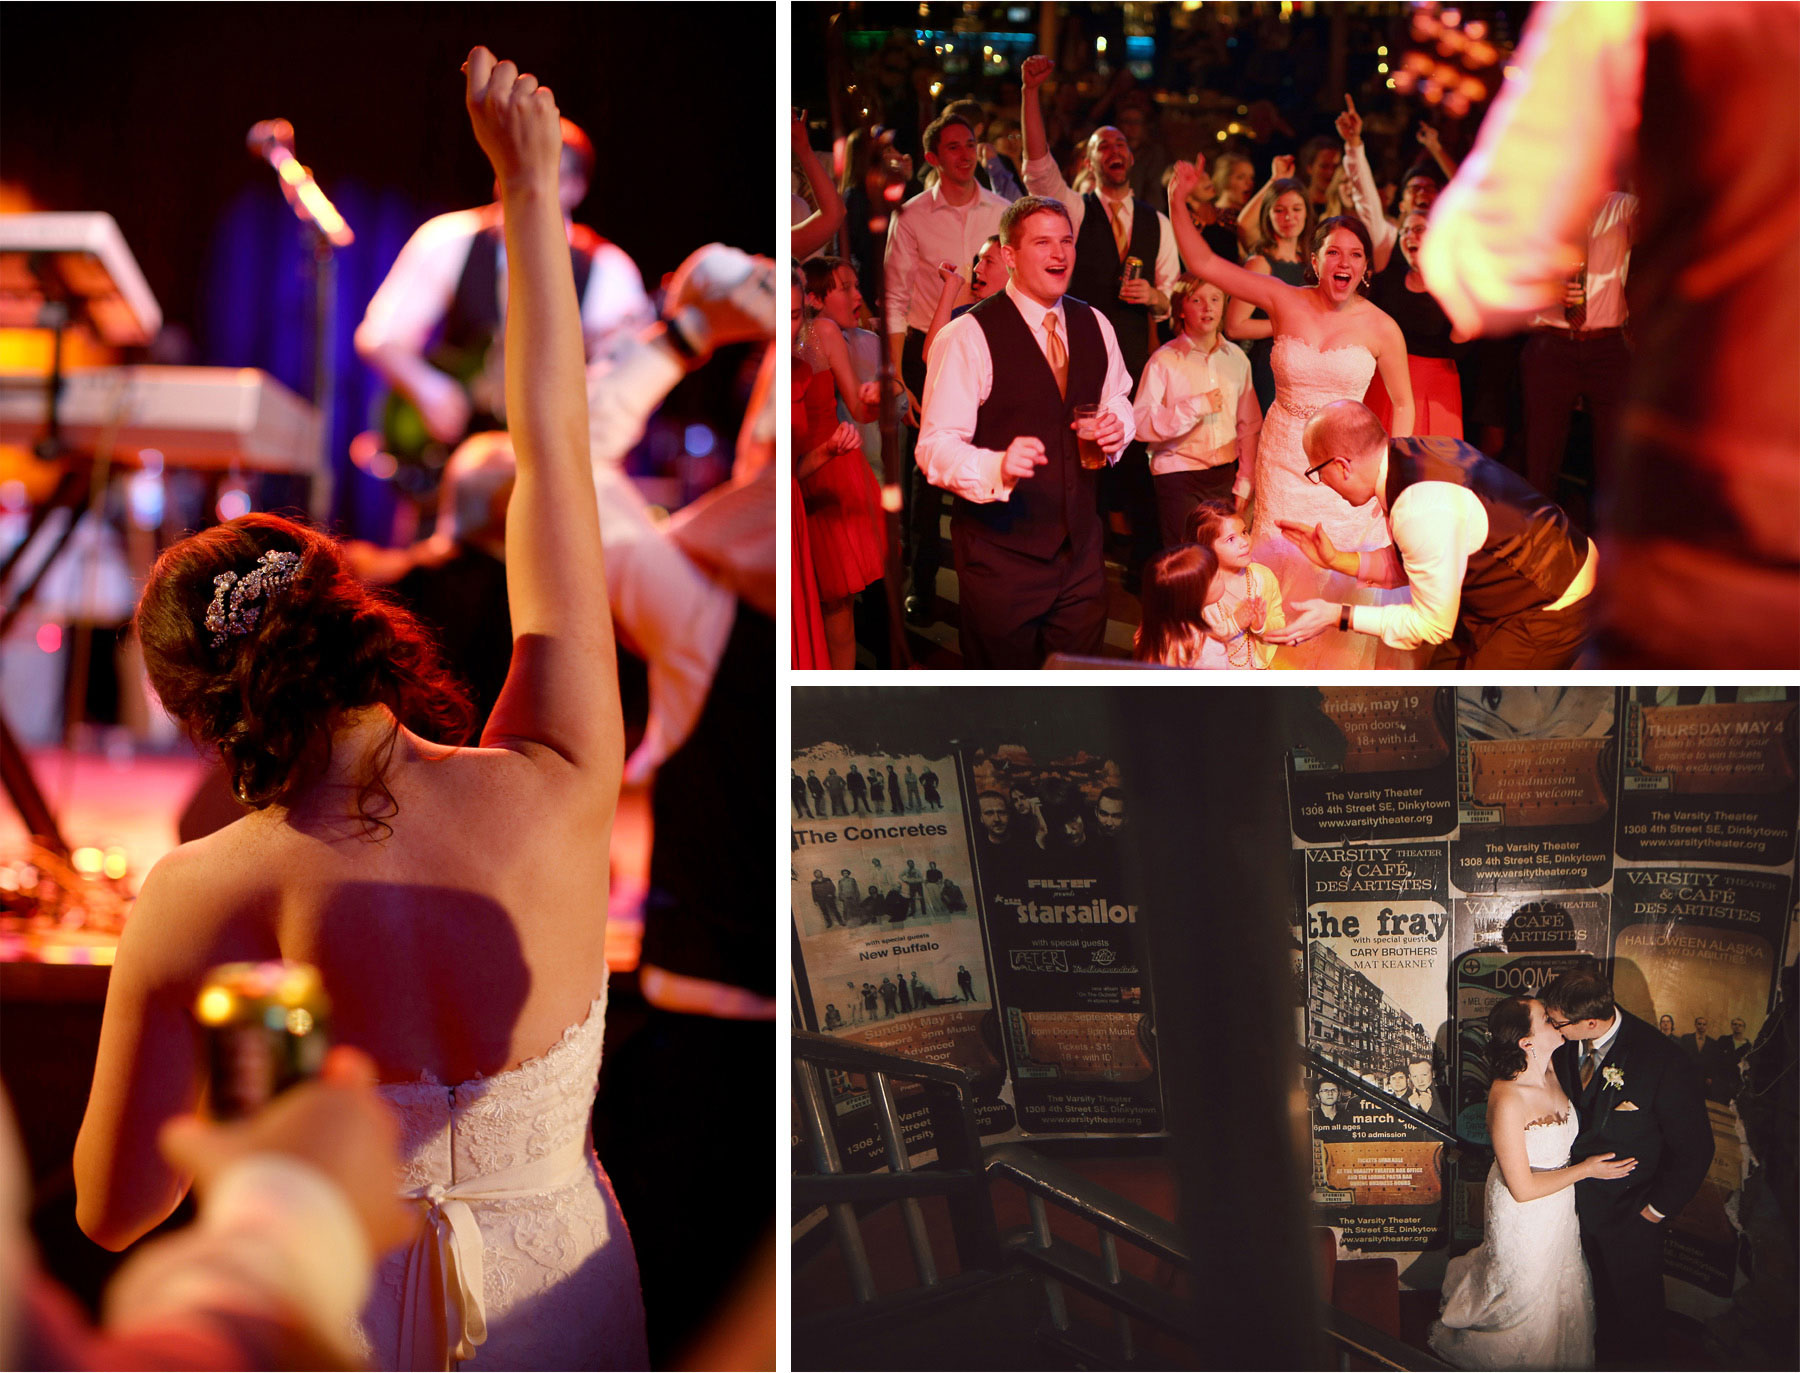 23-Minneapolis-Minnesota-Wedding-Photographer-by-Andrew-Vick-Photography-Winter-Varsity-Theater-Reception-Bride-Guests-Dance-Band-Guitar-Viva-Knievel-Kiss-Vintage-Sara-and-Rob.jpg